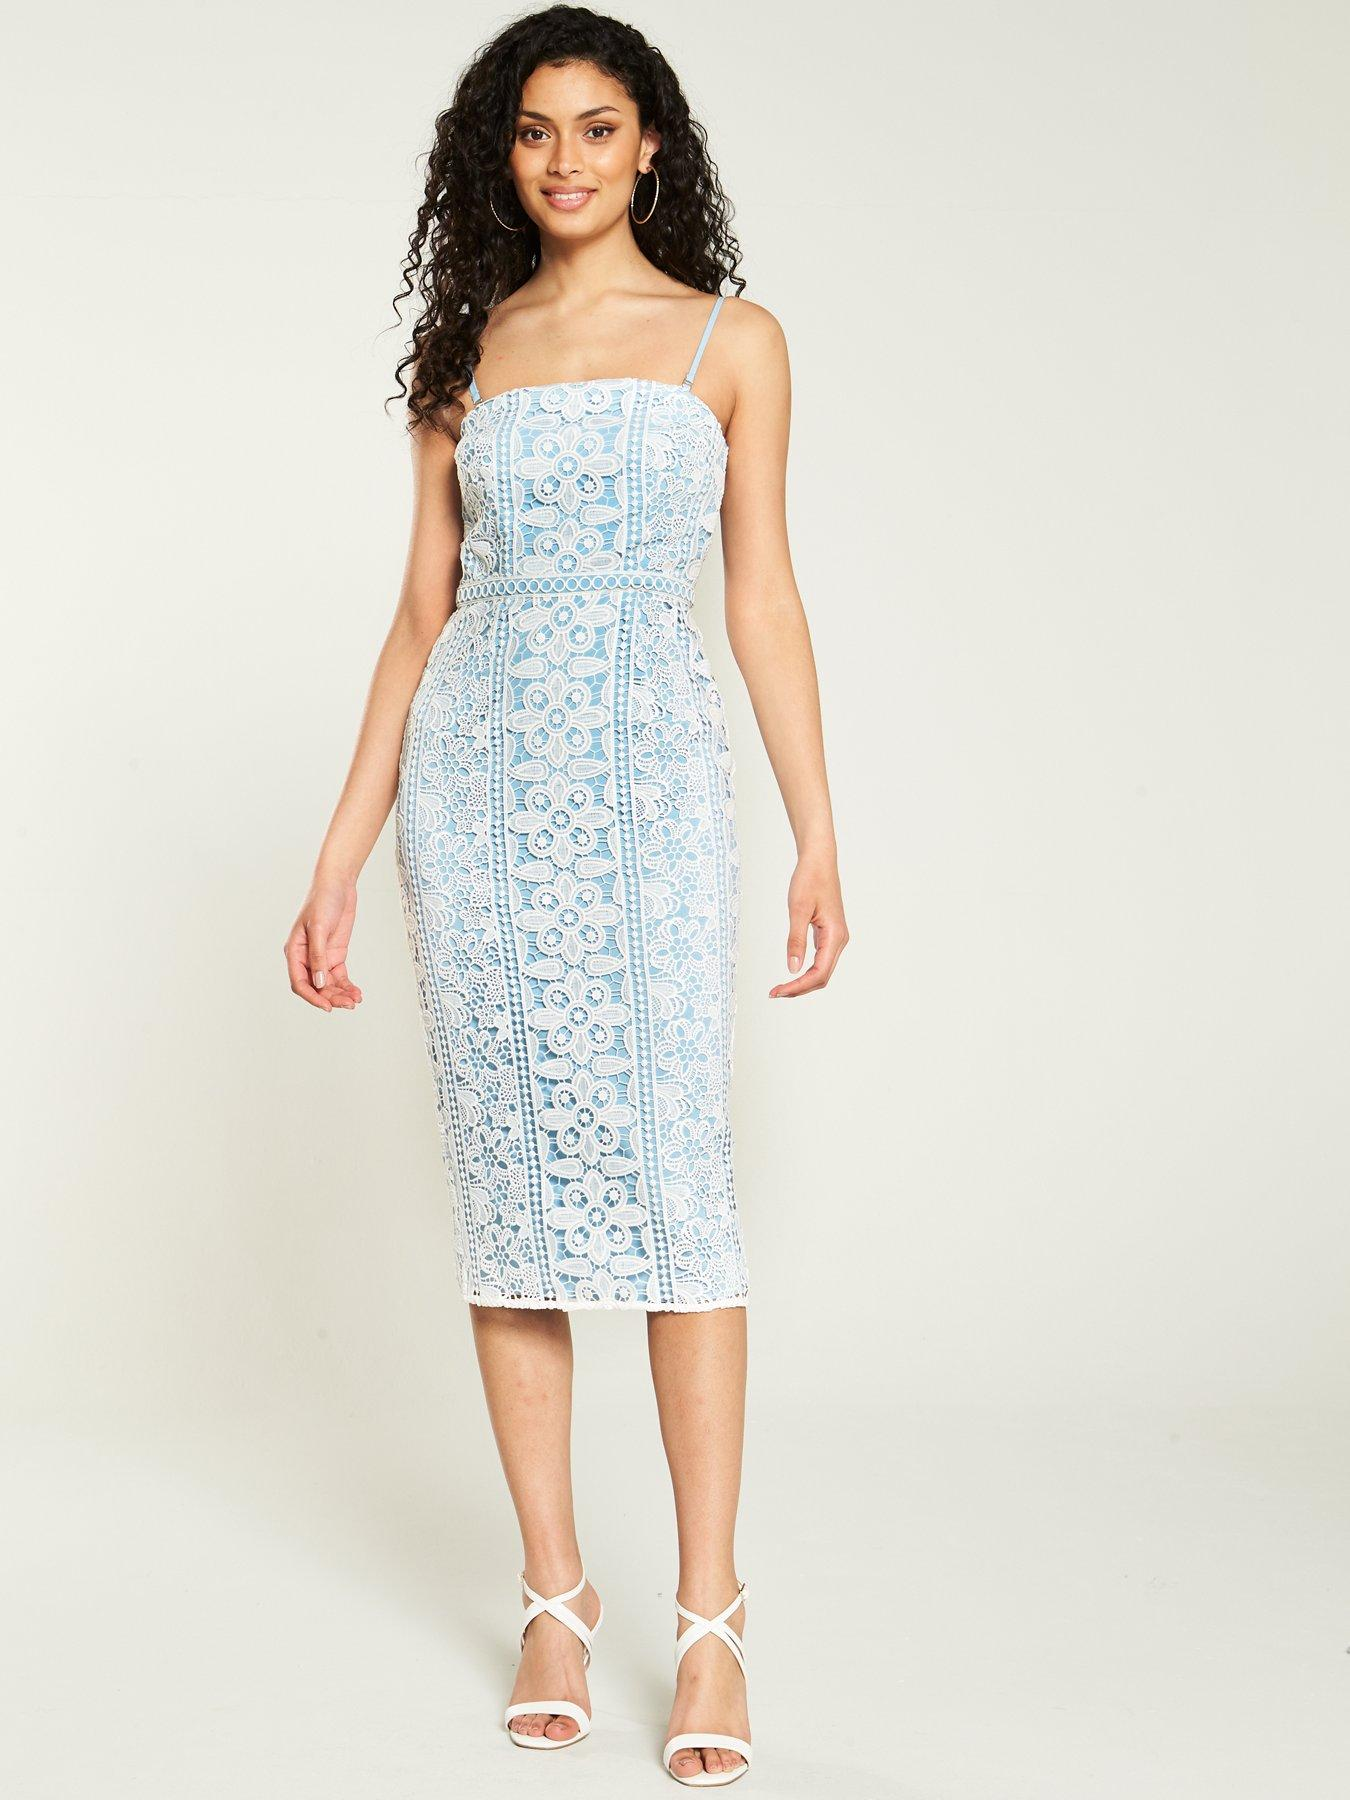 Evening & Cocktail Dresses | All Styles &